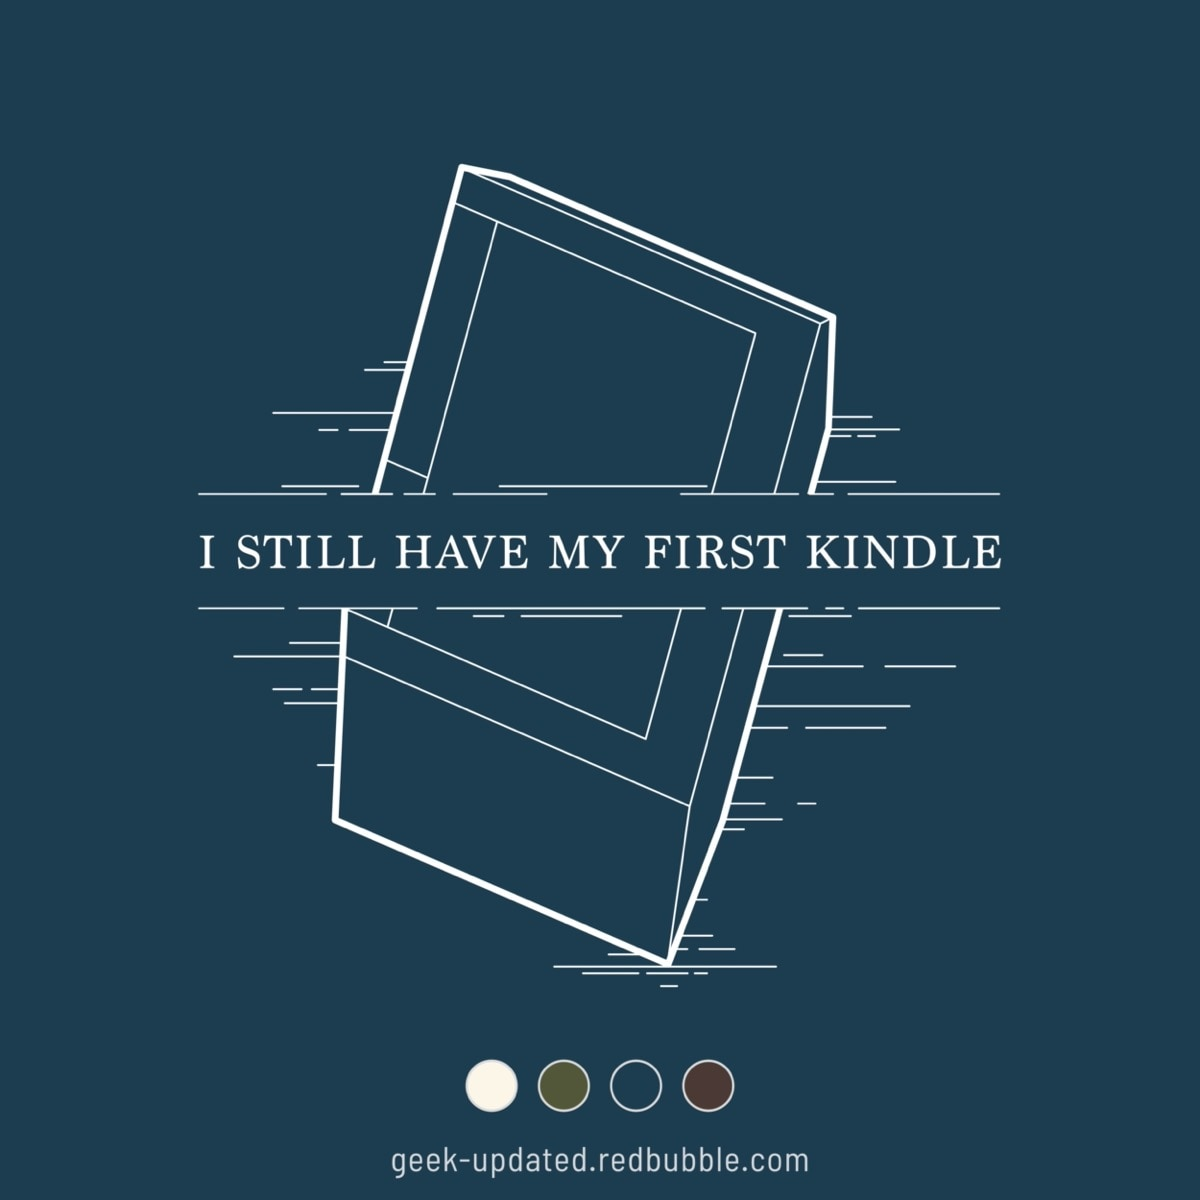 I still have my first Kindle - design by Piotr Kowalczyk